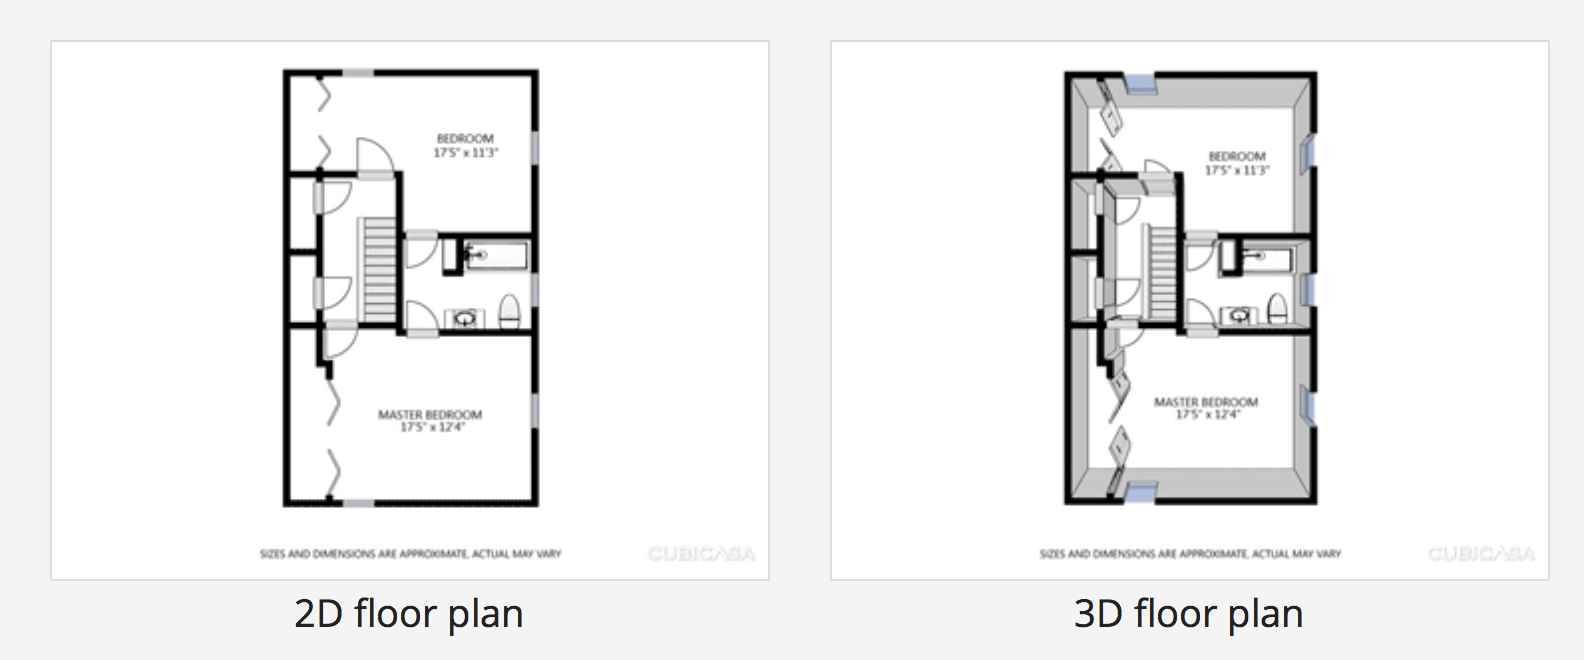 Plan details furthermore Hgtv Dream Home 2007 Floor Plans Pictures further 3 Bedroom Apartment To Rent In Fordwych Road West H stead London NW2 WHP131277 in addition 795 Million Penthouse At 432 Park Ave 2014 4 together with 10610. on luxurious one bedroom apartment floor plan